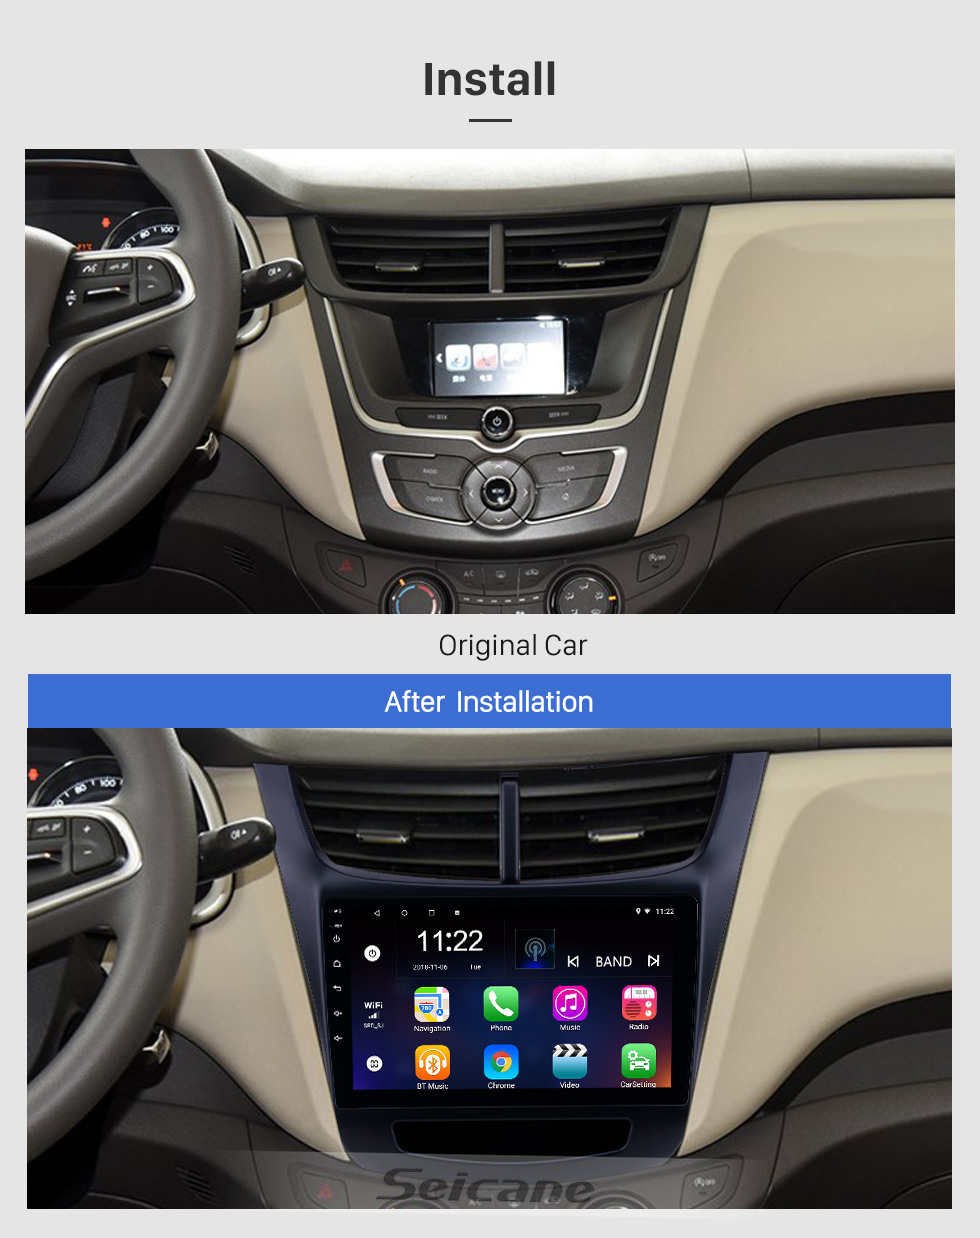 Seicane 2015-2016 Chevy Chevrolet New Sail 9 inch Android 8.1 HD Touchscreen Bluetooth GPS Navigation Radio USB AUX support Carplay 3G WIFI Mirror Link